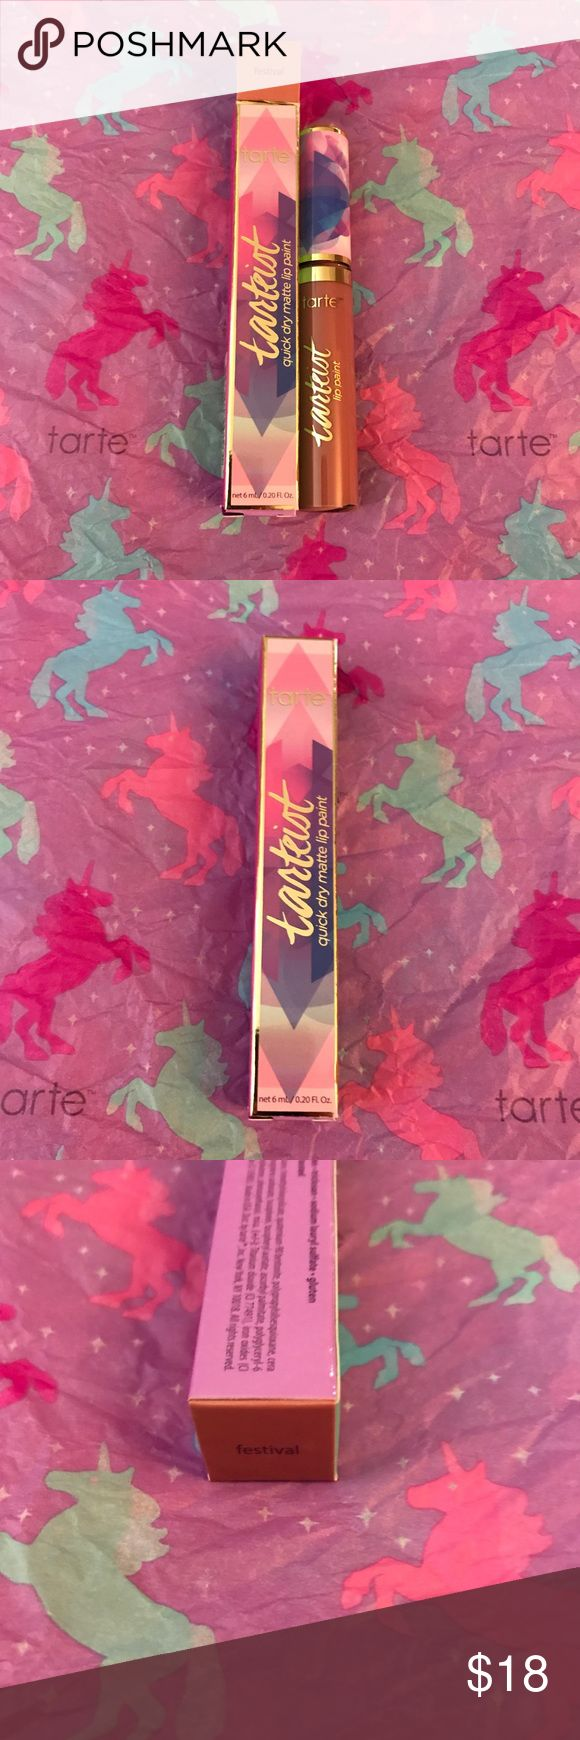 LE Tarte Tarteist Quick Dry Matte Lip - Festival Limited-edition shade of the quick dry, full coverage, transfer-proof liquid lipstick dressed up in fantasy glam packaging. Create full coverage lip looks with this lightweight, liquid-to-matte lip paint. It dries down instantly with no transferring & the comfortflex formula means it moves with your lips without drying them out, cracking or feathering. With the easy applicator wand, you can line & shade lips with high-impact, opaque matte…